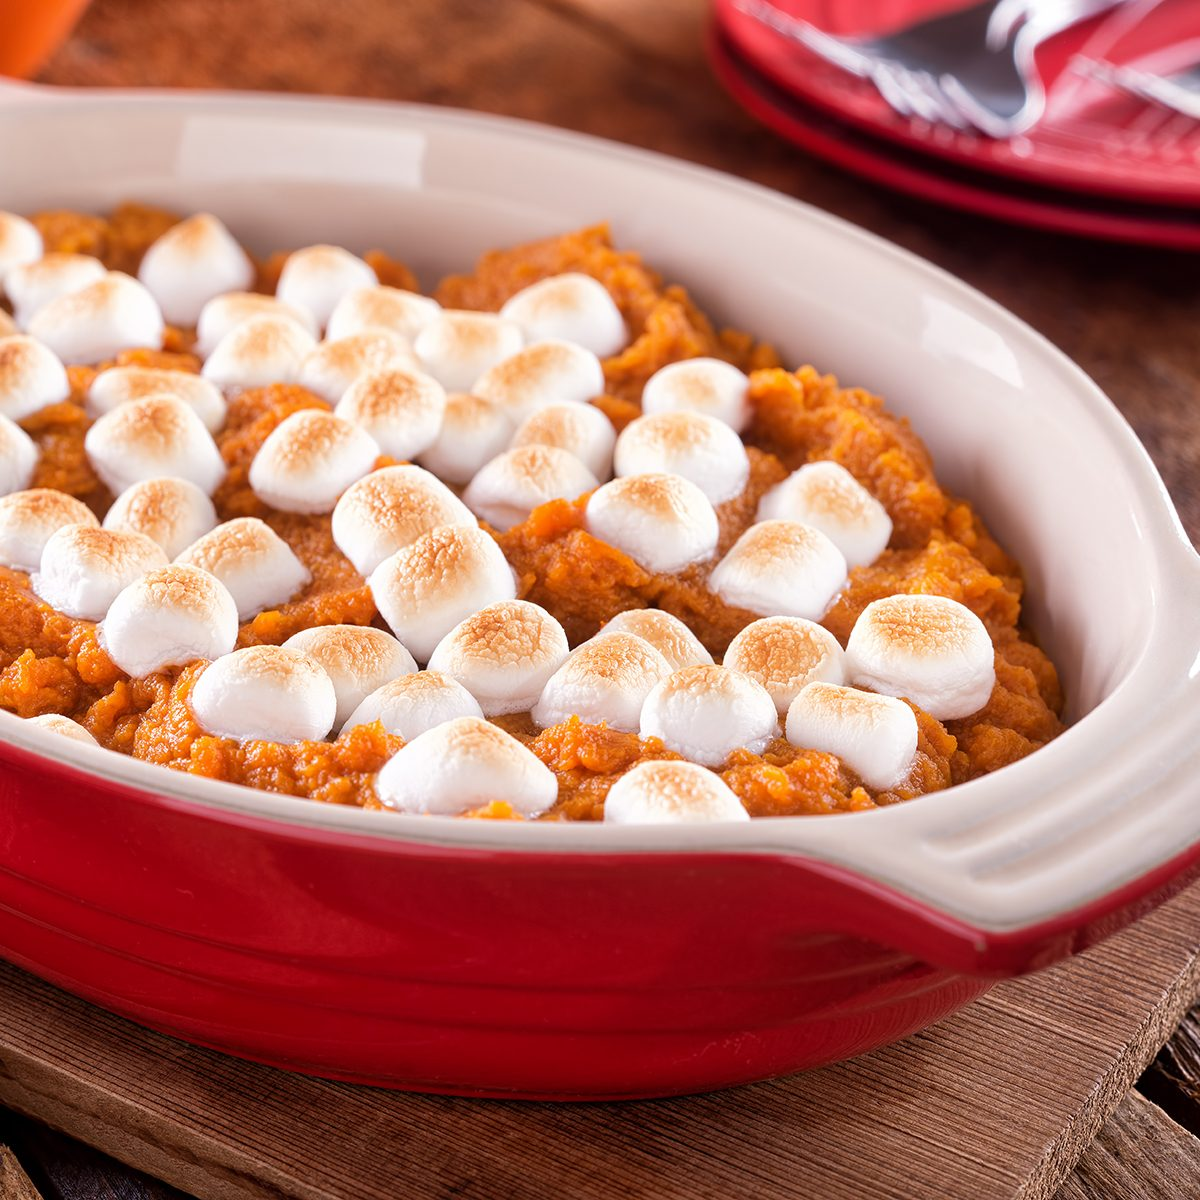 A delicious homemade sweet potato casserole with marshmallow topping.; Shutterstock ID 1501601885; Job (TFH, TOH, RD, BNB, CWM, CM): TOH